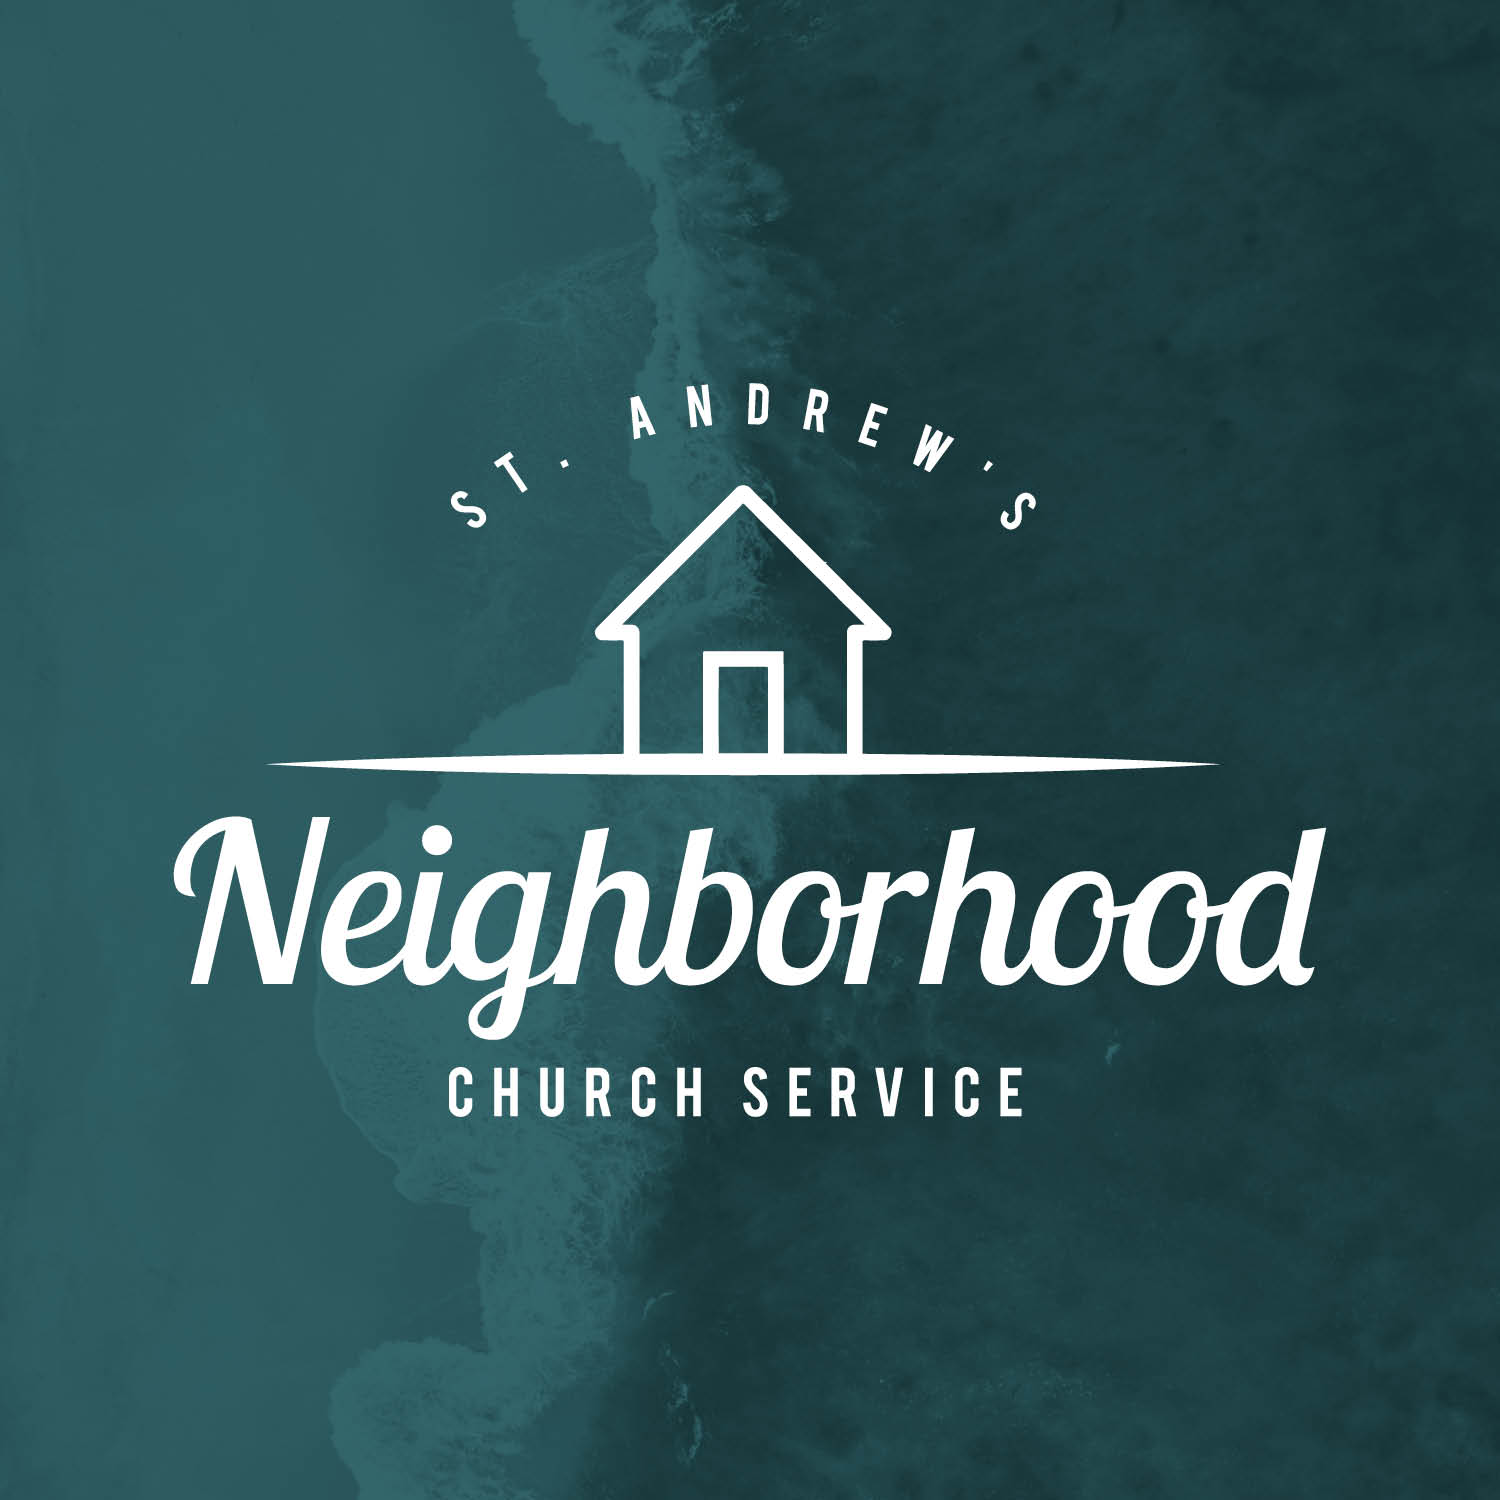 neighborhood-service-atl.jpg